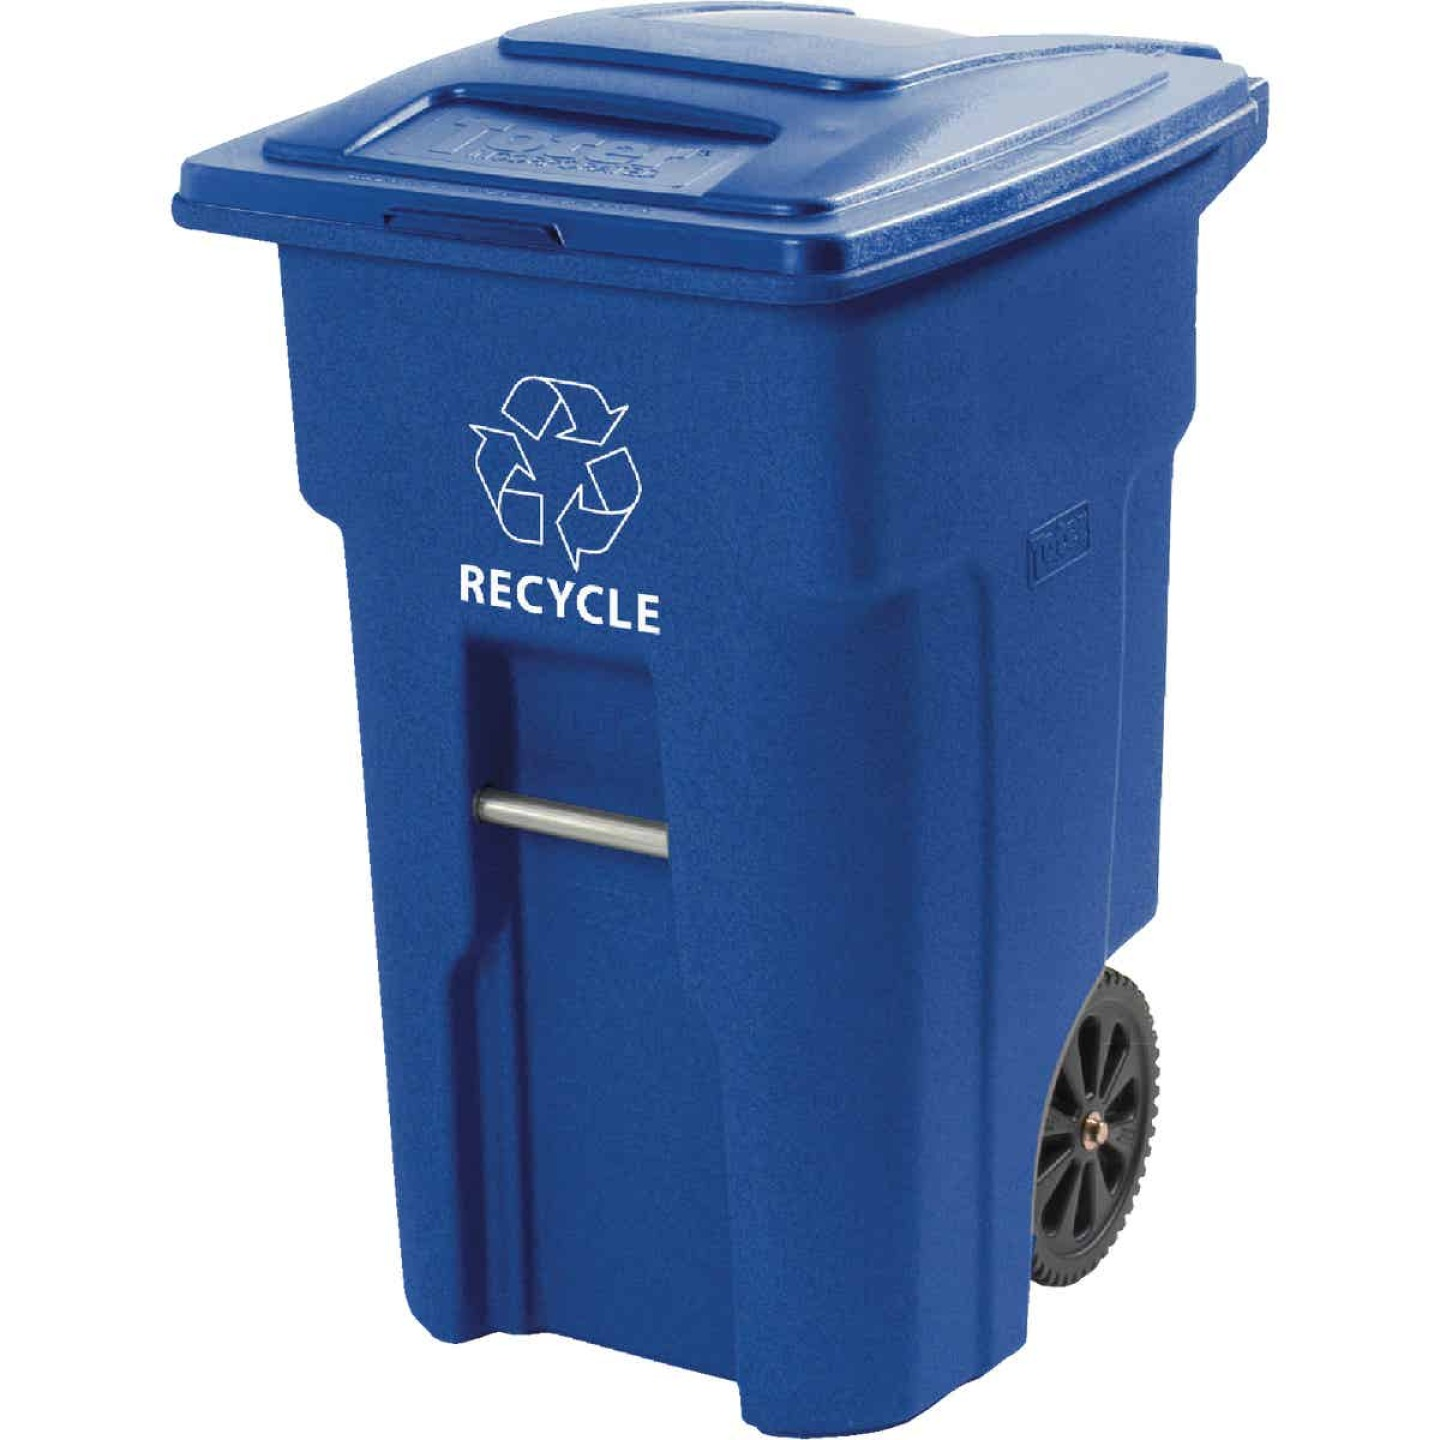 Toter 48 Gal. Recycling Trash Can with Lid Image 1